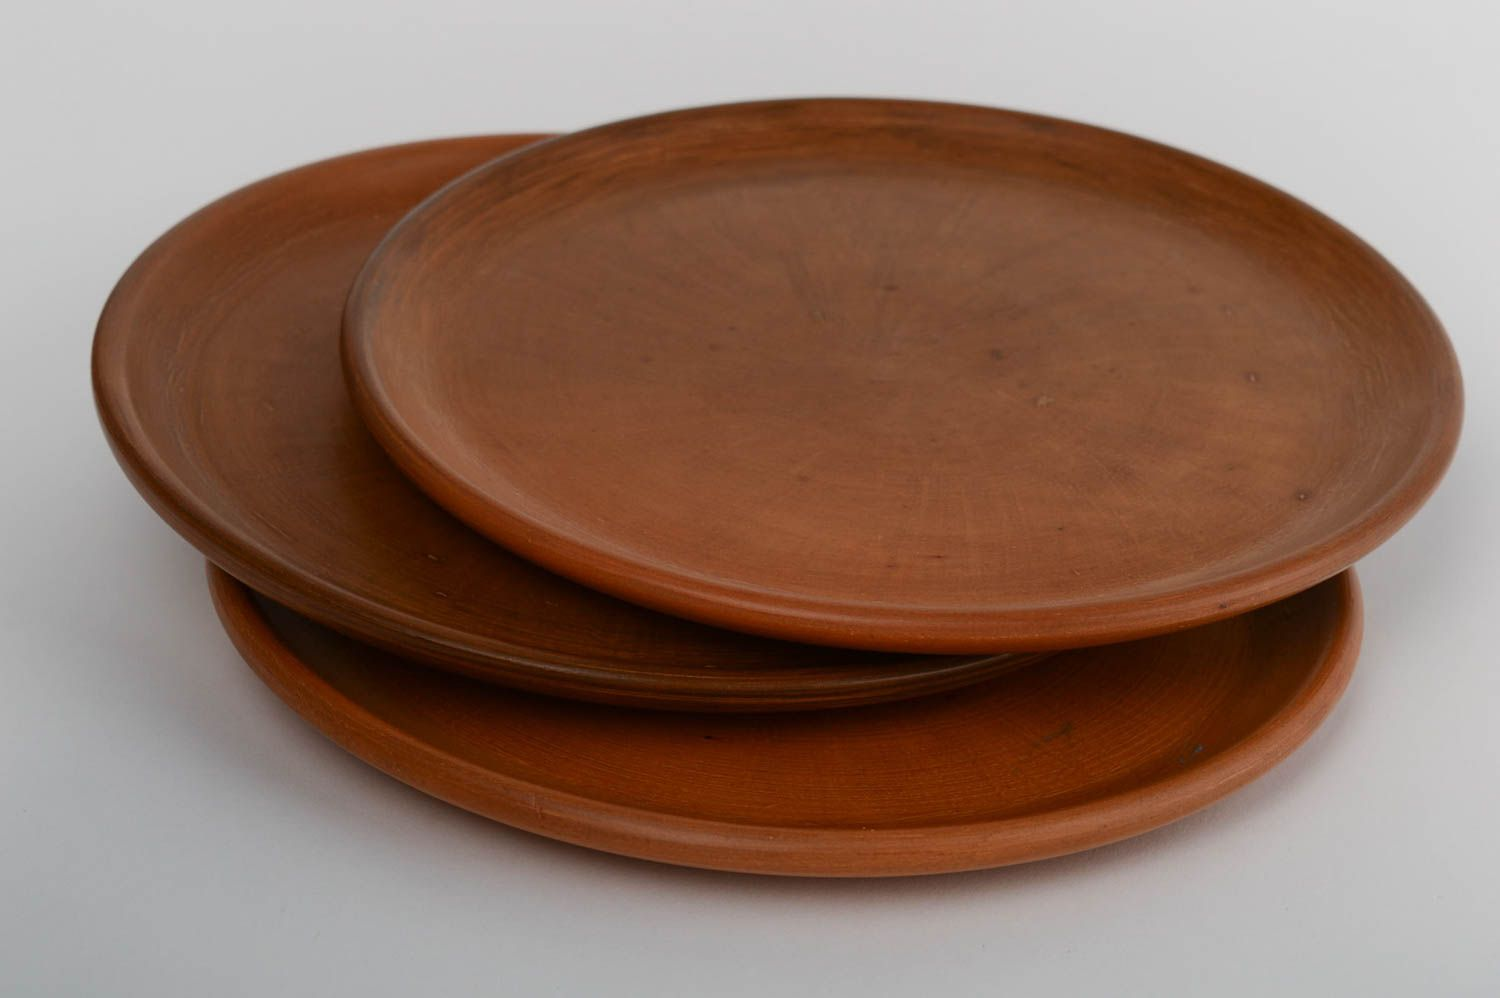 dishwear Set of handmade blue clay plates made using terracotta technique large 3 pieces - MADEheart & MADEHEART \u003e Set of handmade blue clay plates made using terracotta ...